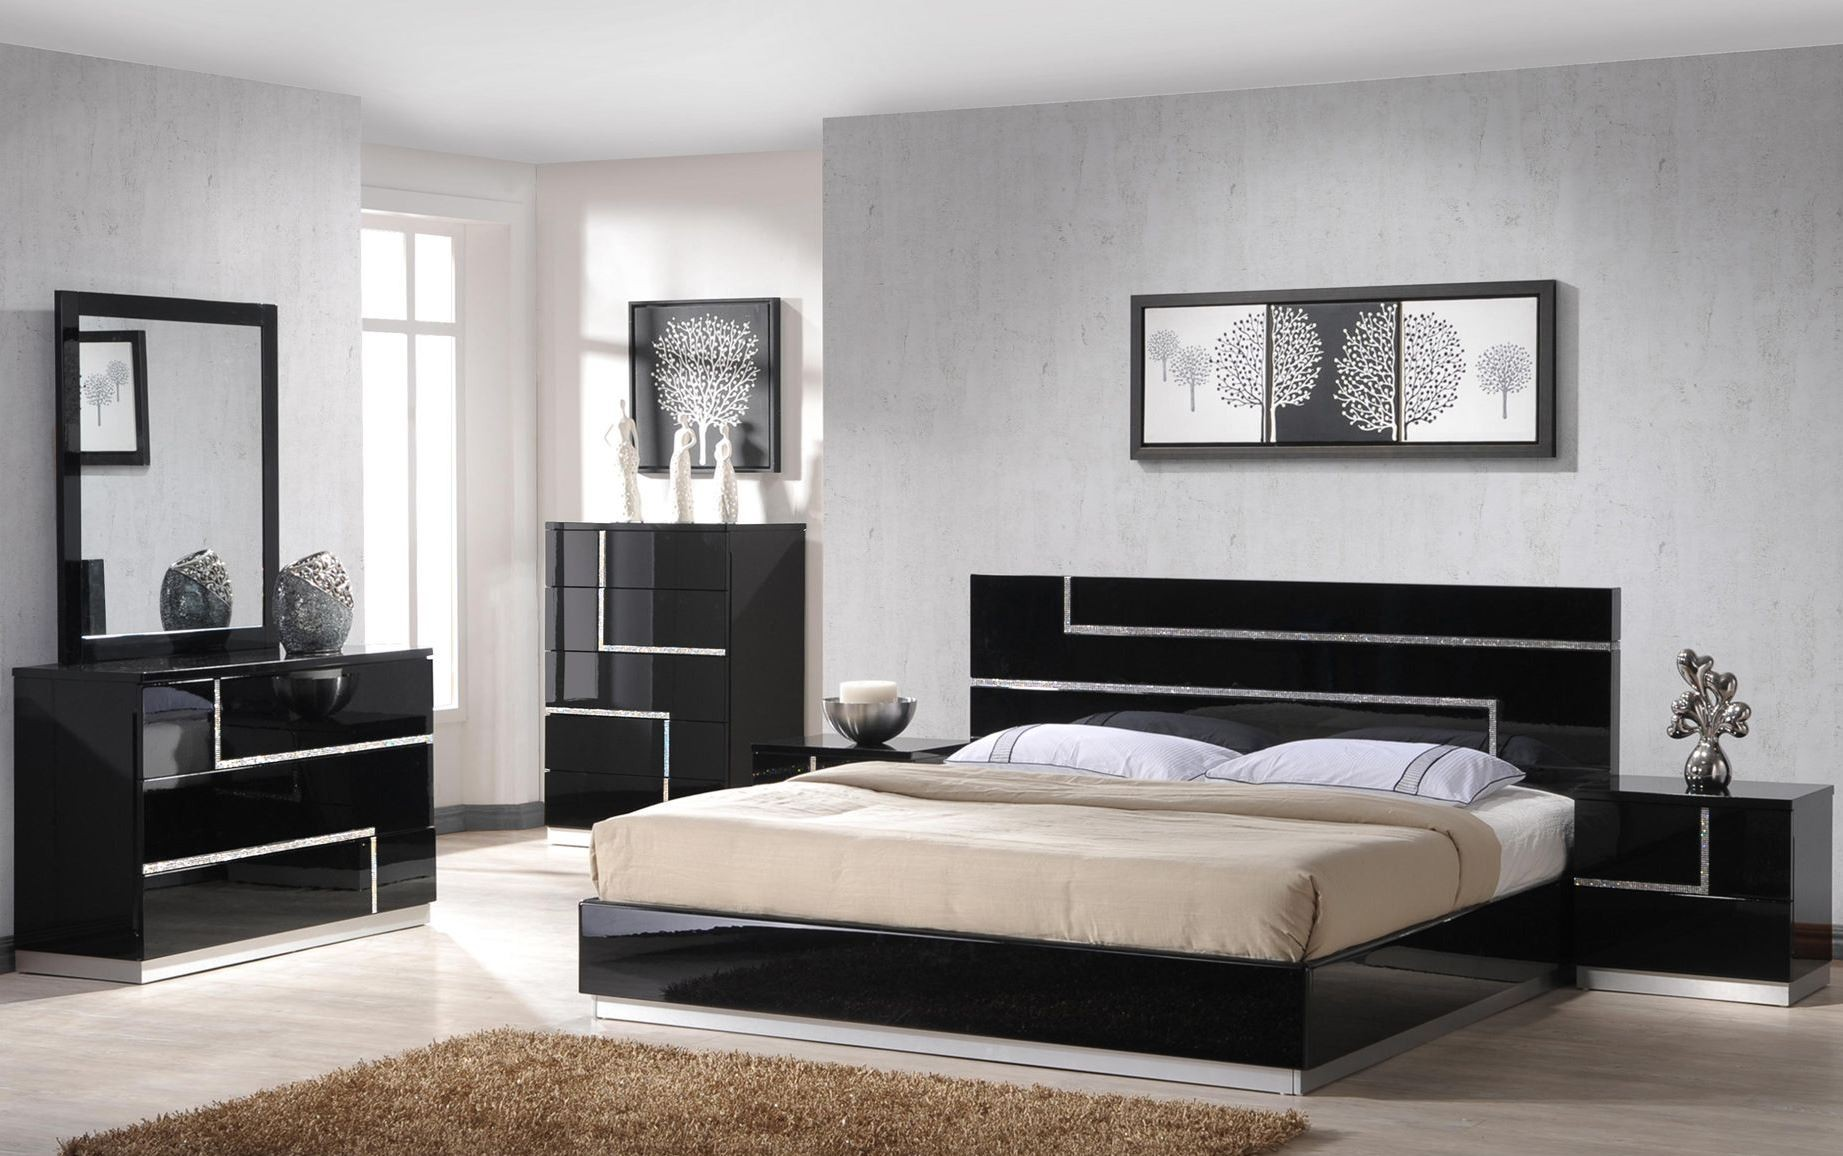 lucca black lacquer platform bedroom set from j m 17685 q 14583 | lucca modern bedroom 2